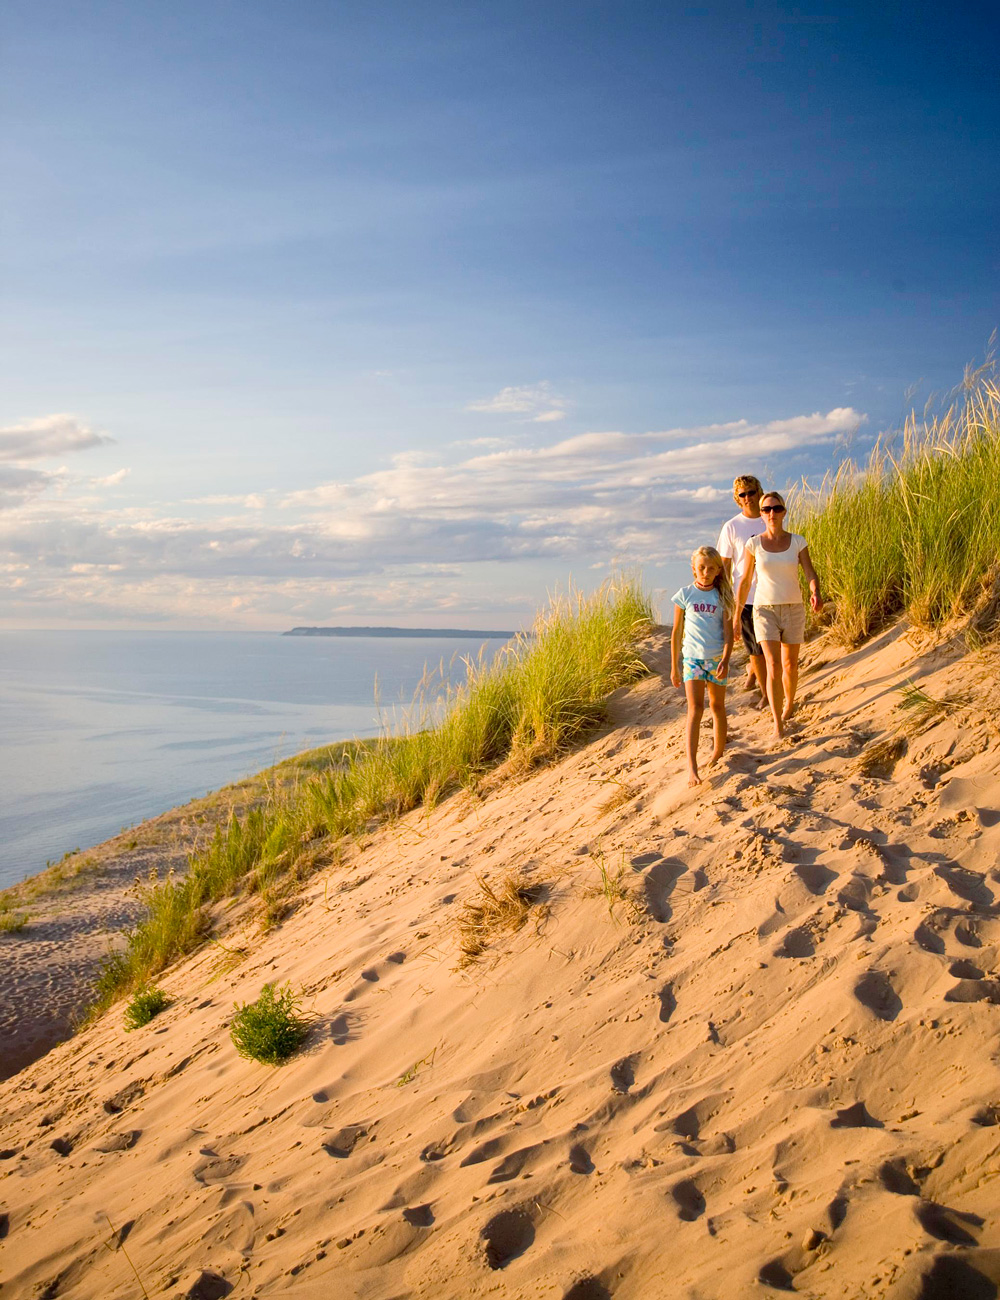 Traverse bays: what to do